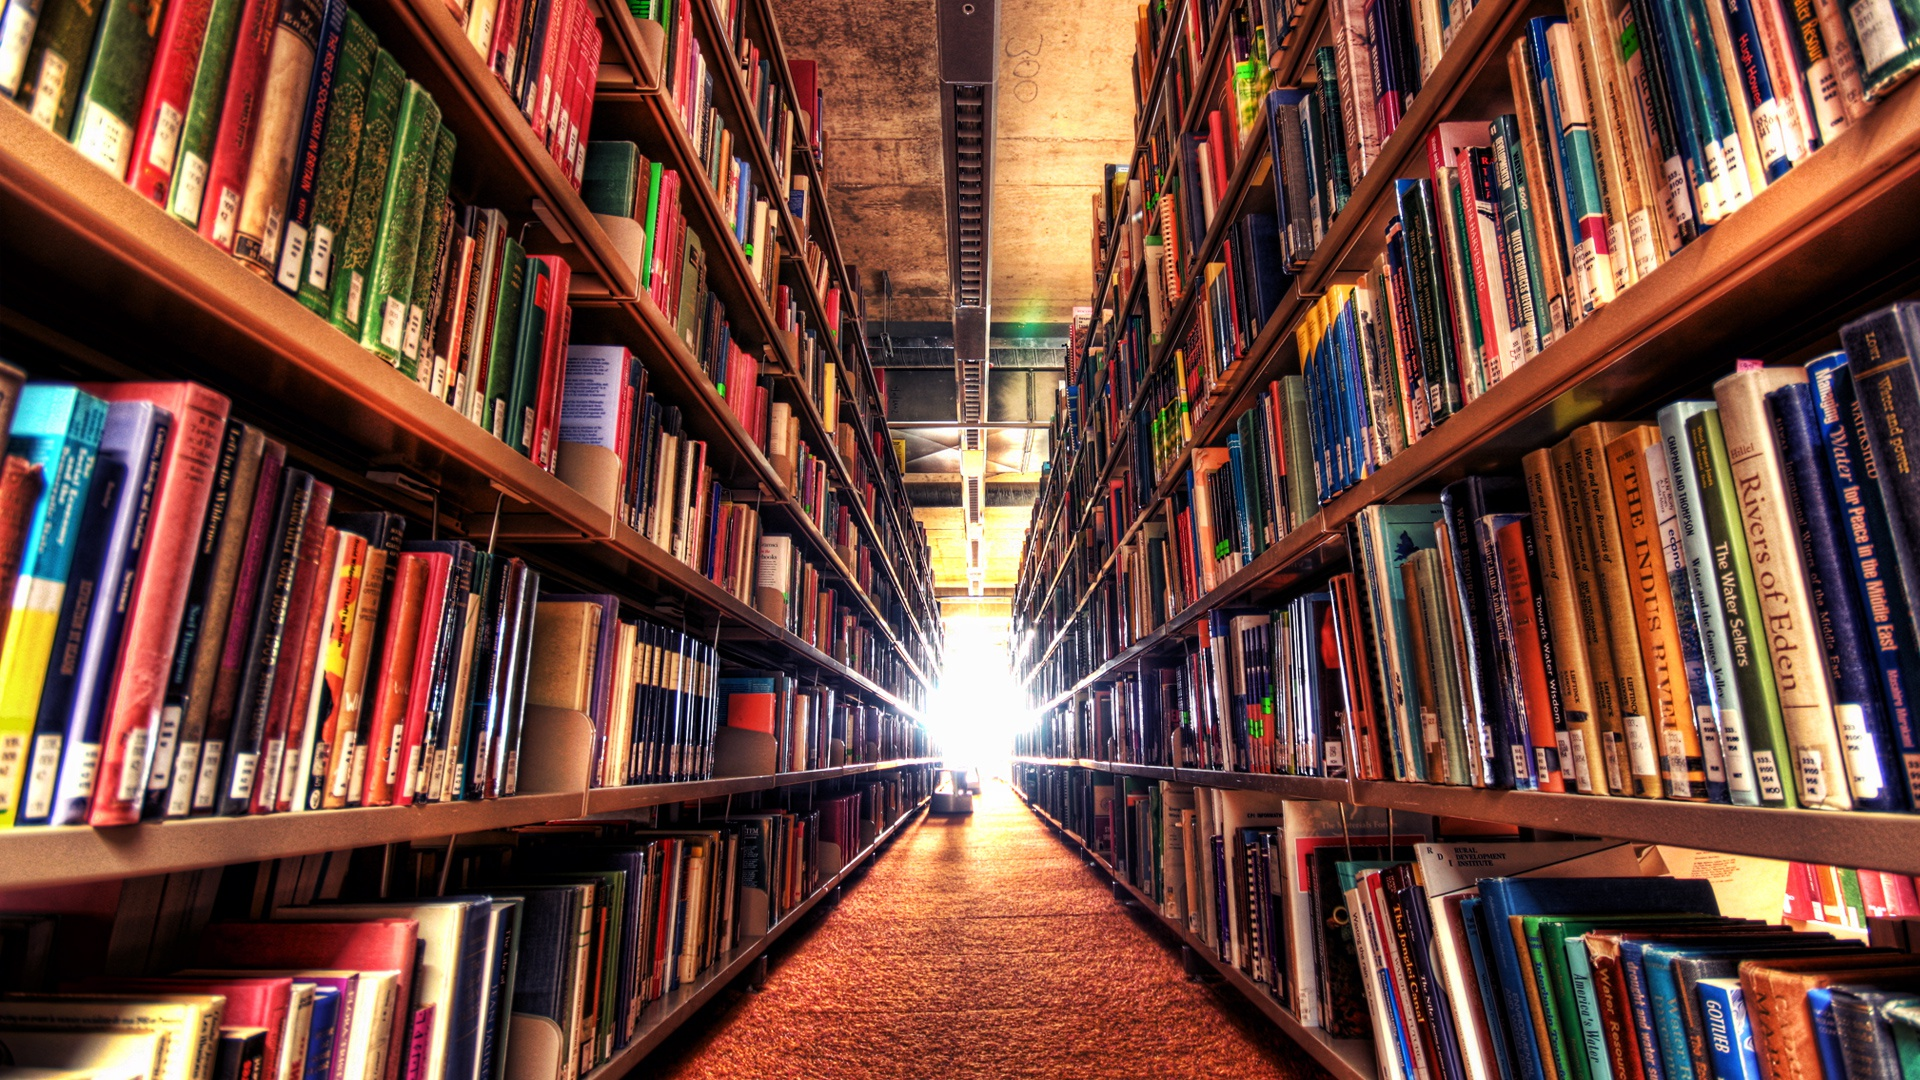 is there life for books and libraries in an internet society? Libraries today are more important than ever more than just book repositories, libraries can become bulwarks against some of the most crucial challenges of our age: unequal access to education, jobs, and information.